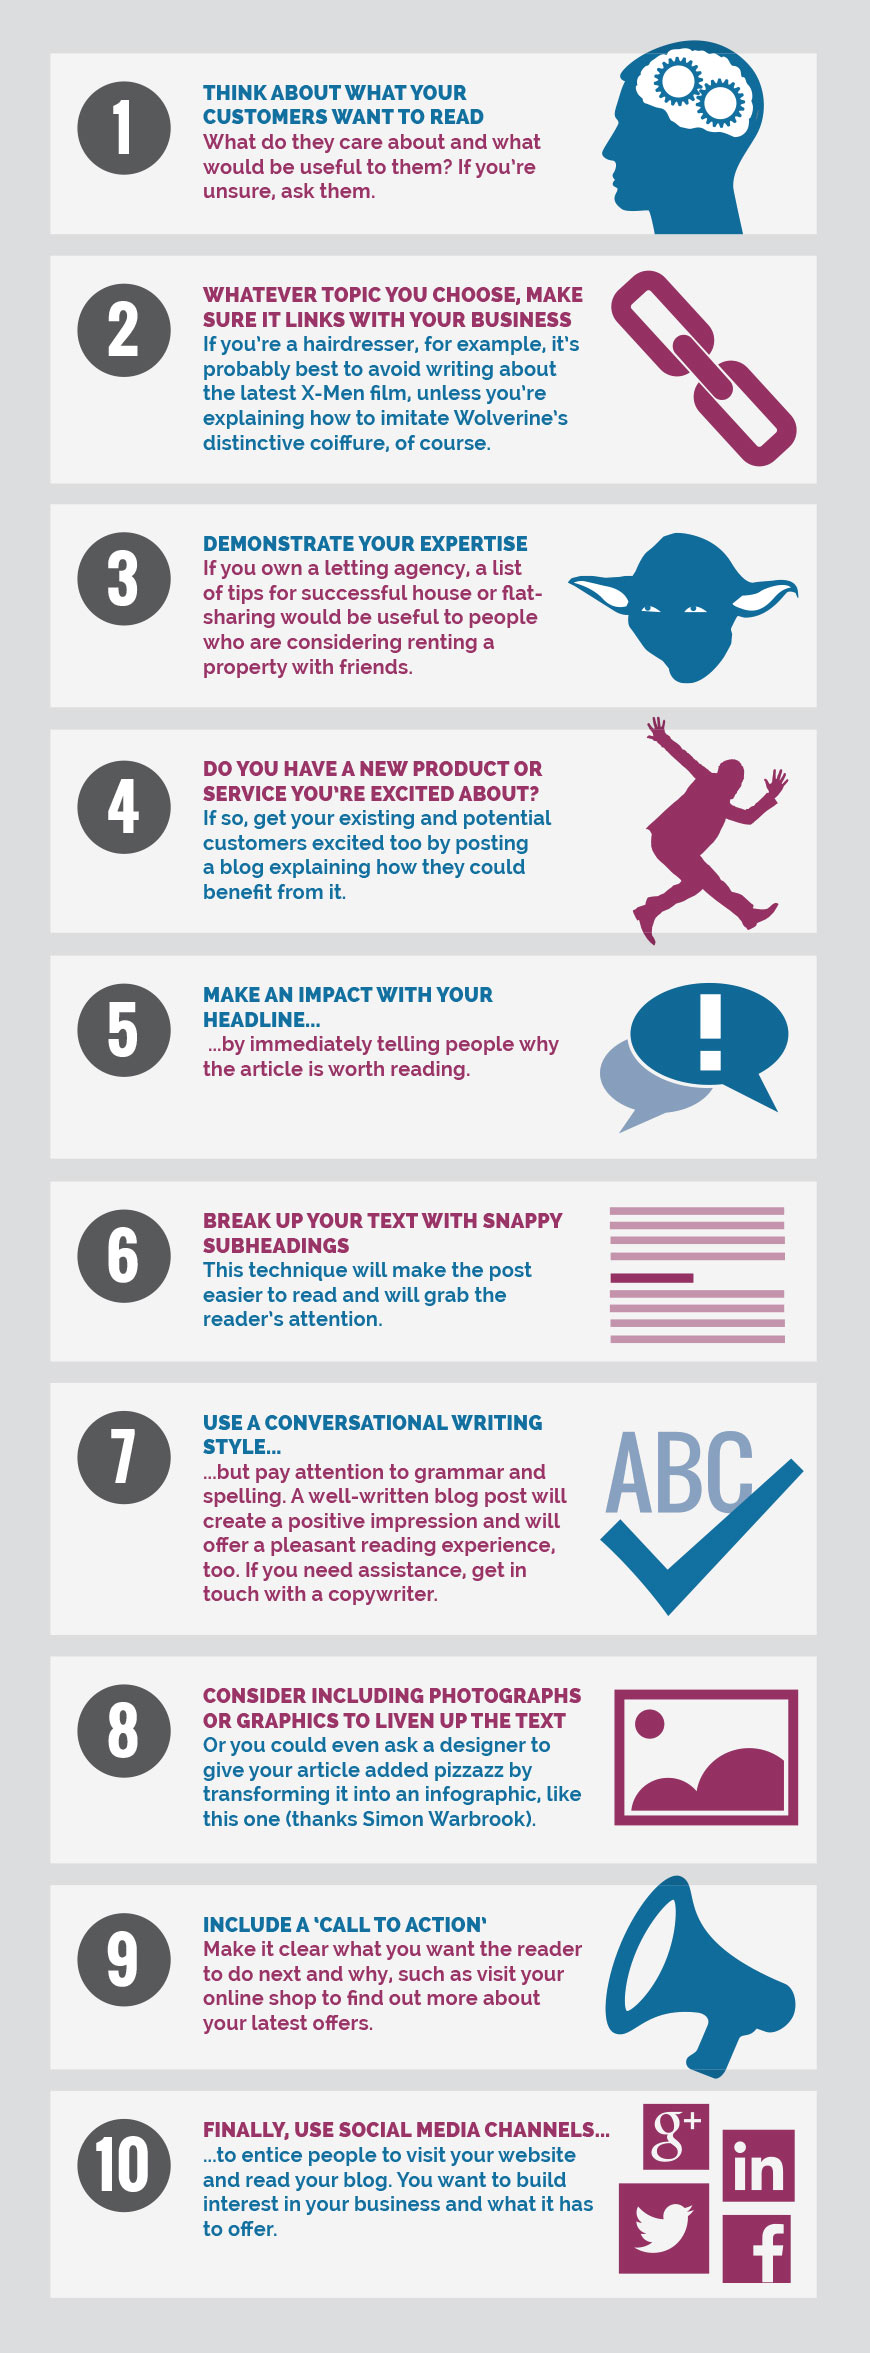 10 tips for terrific business blogs